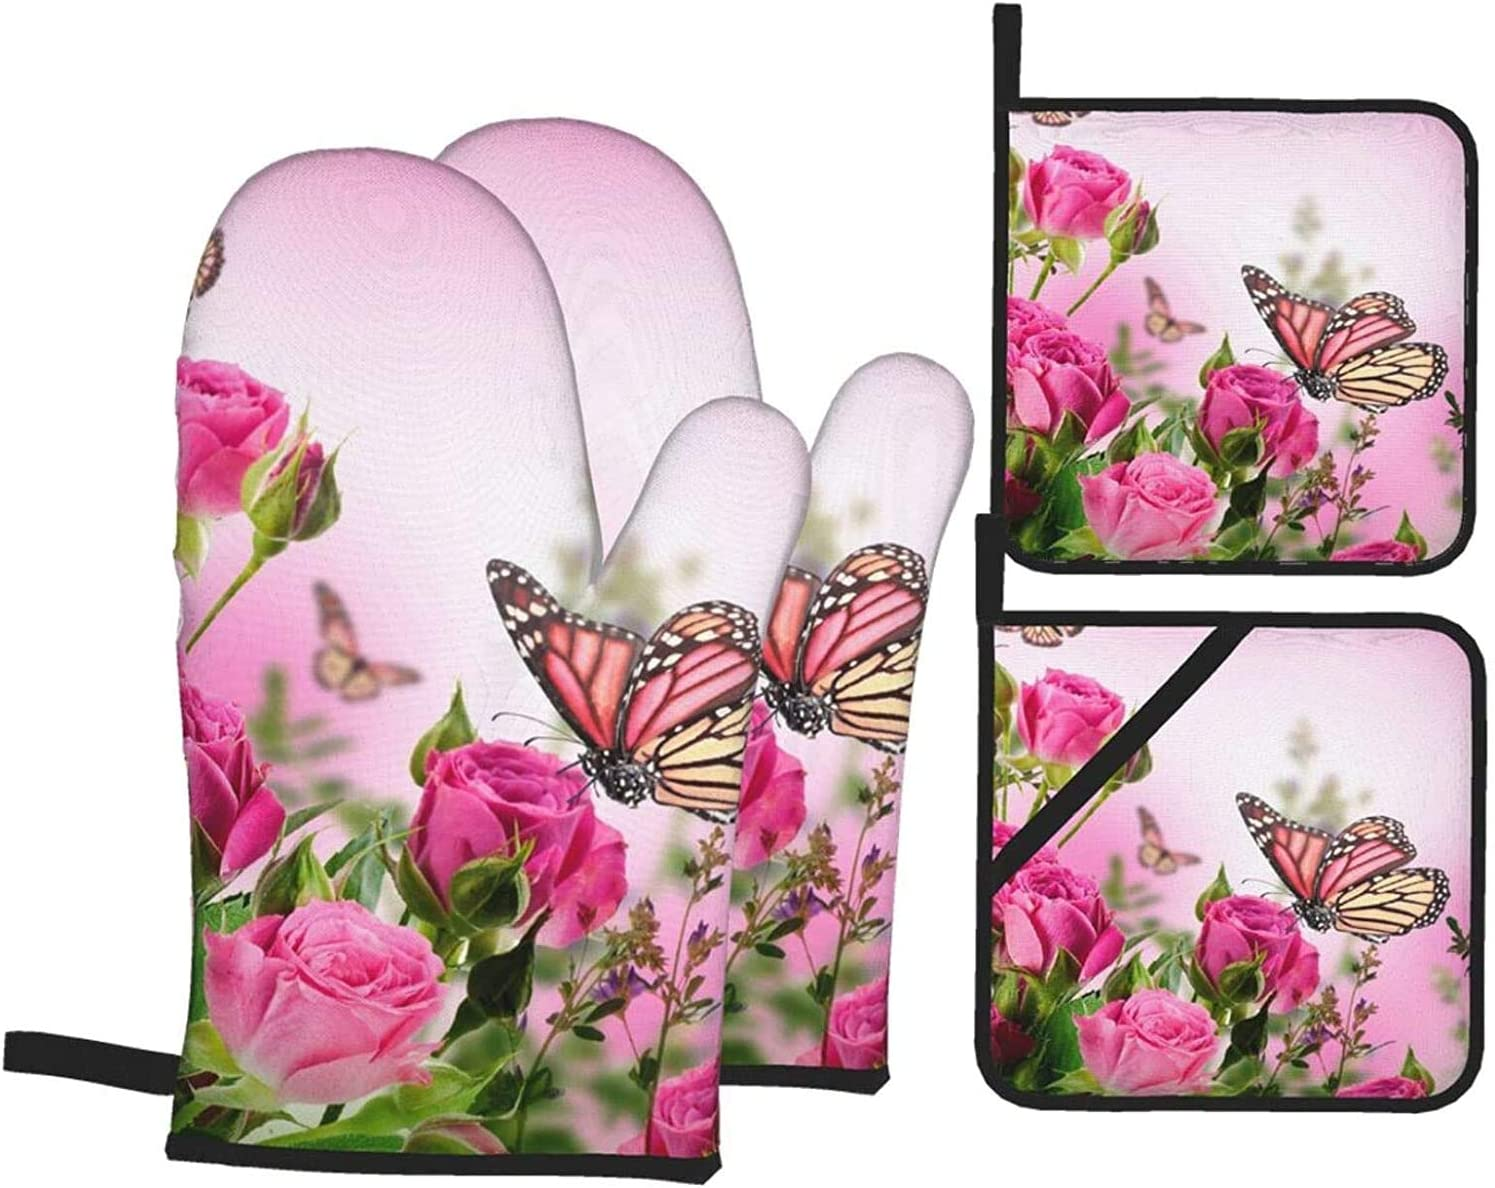 Roses and Max 40% OFF Flower Buds with Mitts Butterflies Oven Beauty products Holder Pot